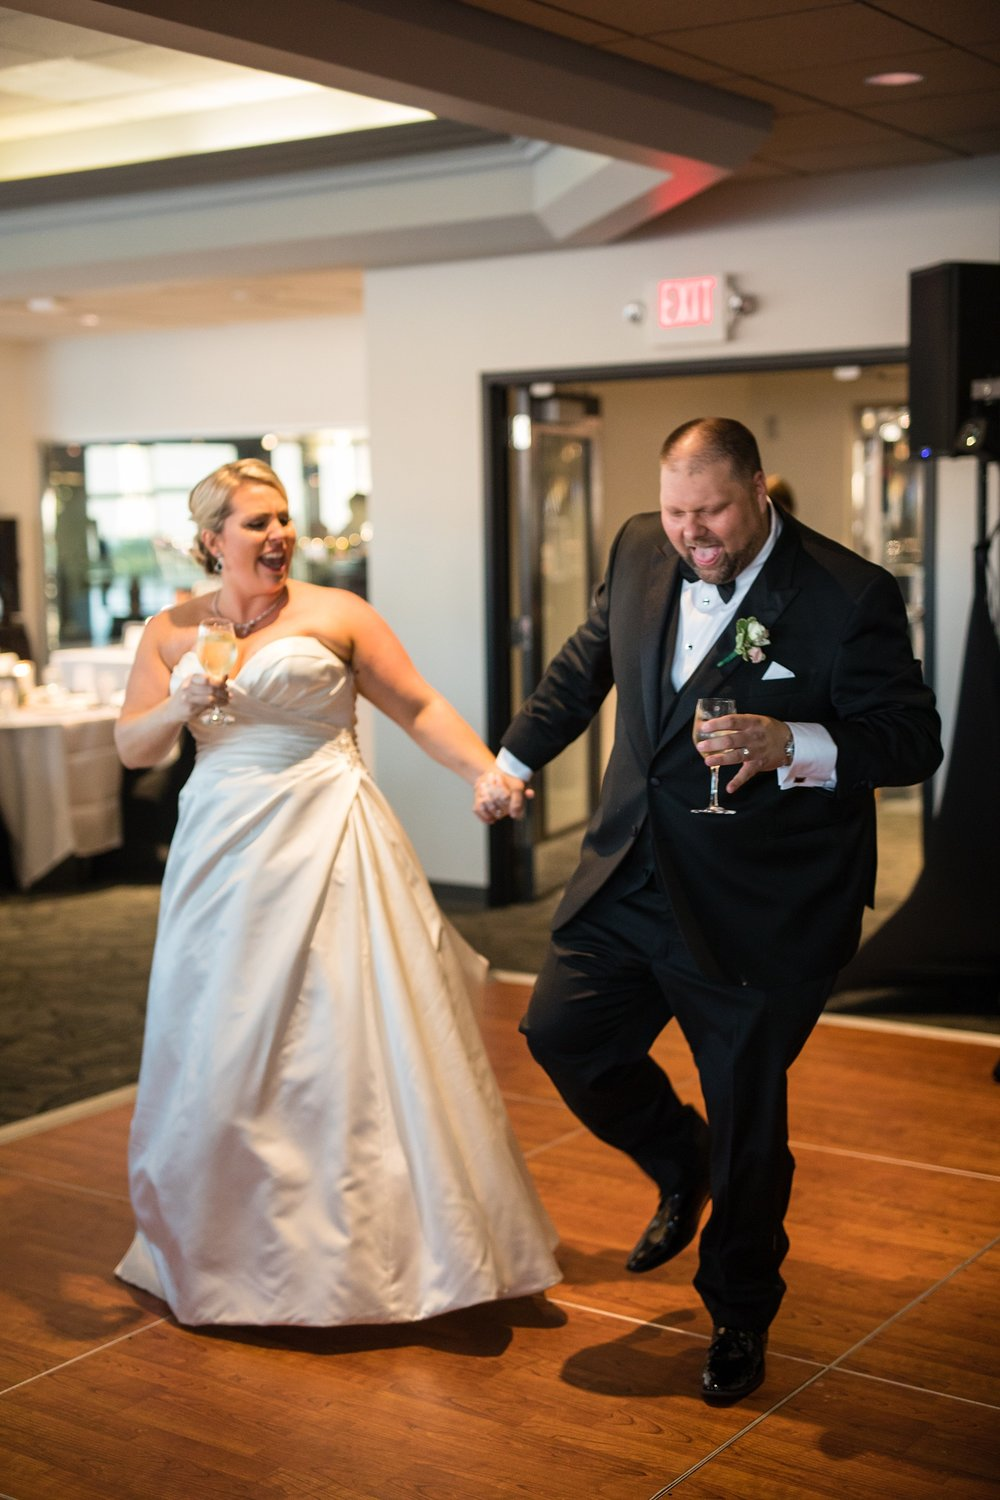 Brandon_Shafer_Photography_Brad_Sarah_Downtown_Grand_Rapids_Wedding_0053.jpg